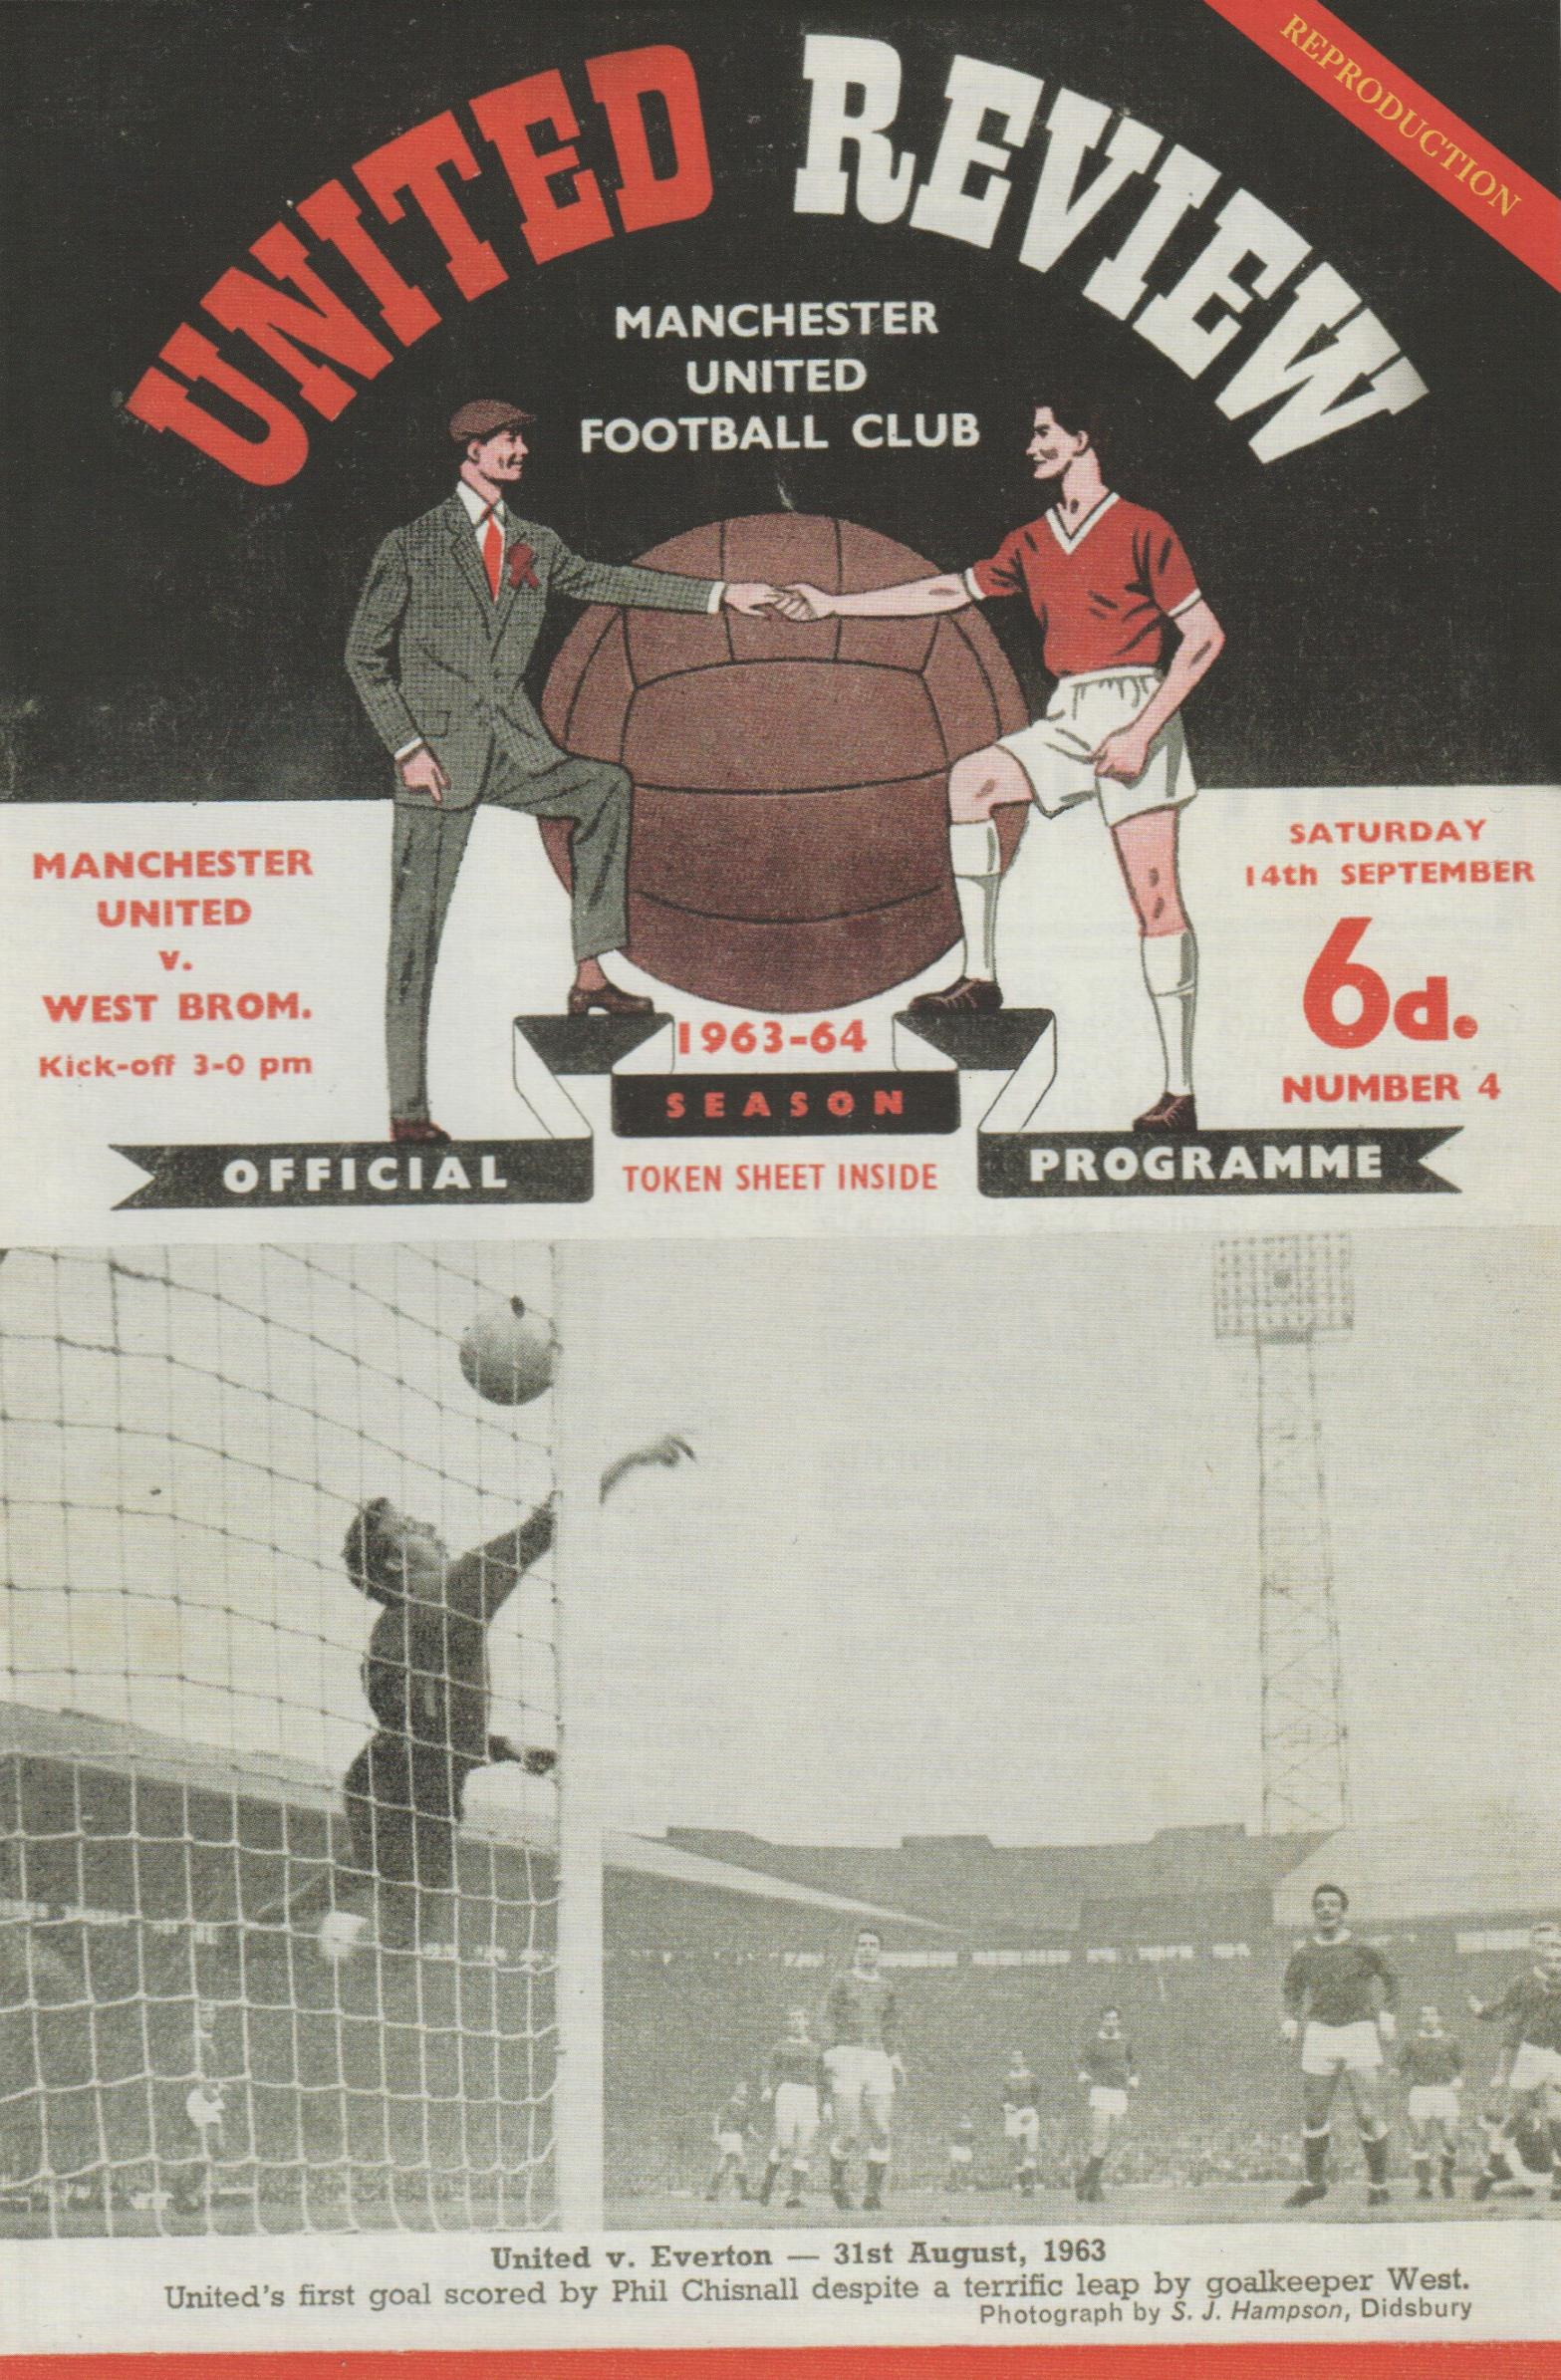 1963 - GEORGE BEST DEBUT - MAN UTD v WEST BROM